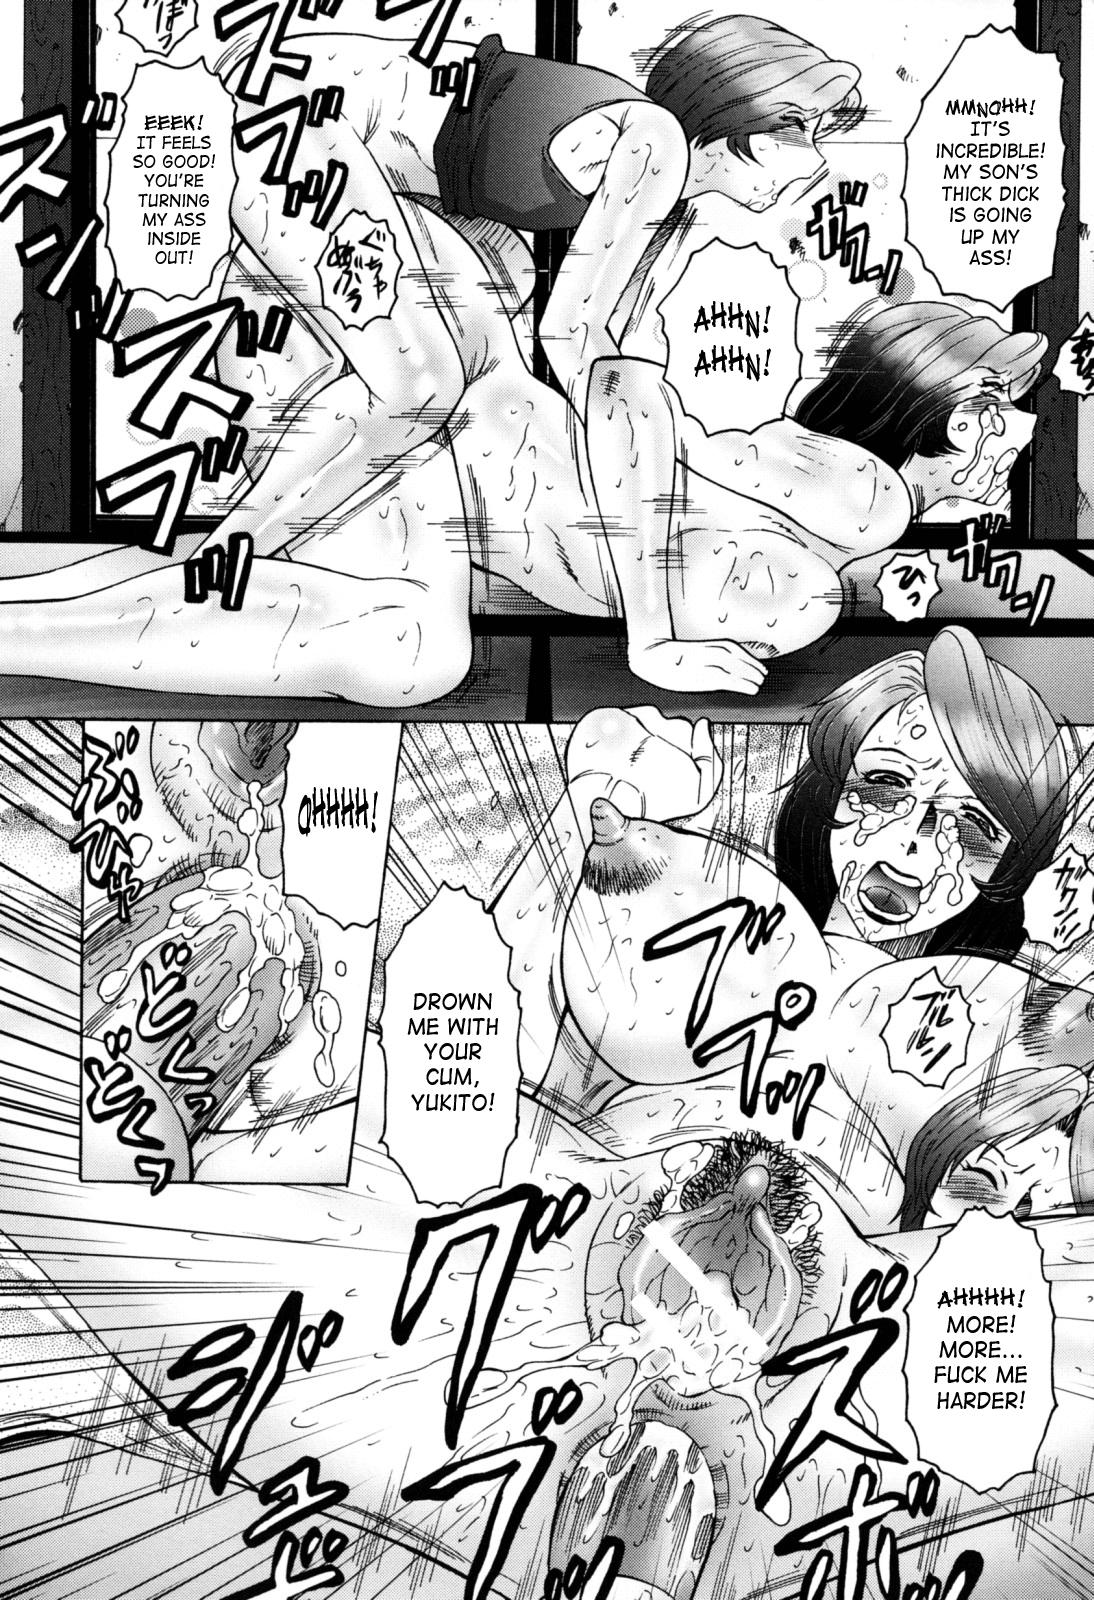 [Fuusen Club] Boshino Toriko - The Captive of Mother and the Son | Enslaved Mother and Son Ch. 1-5 [English] [SaHa] 97